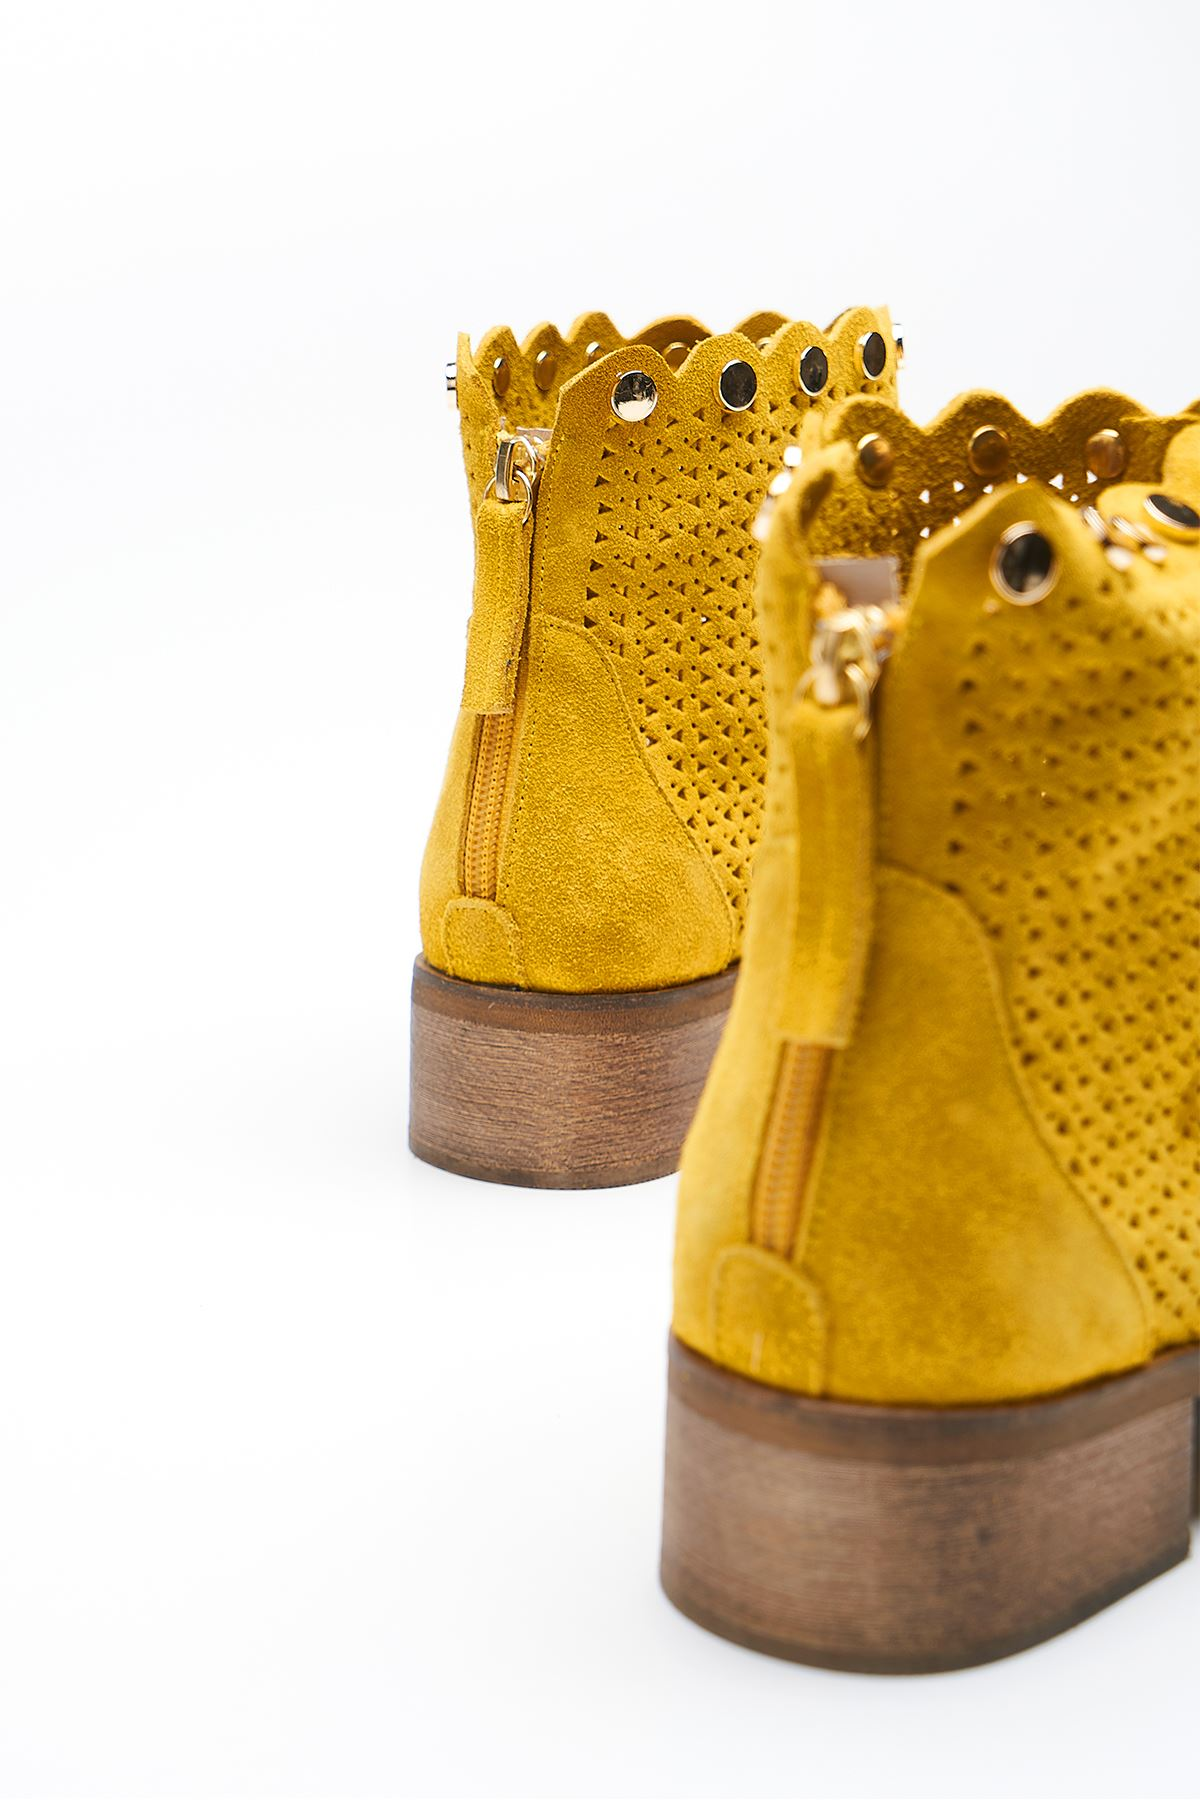 Gust Yellow Genuine Leather Women's Summer Boots